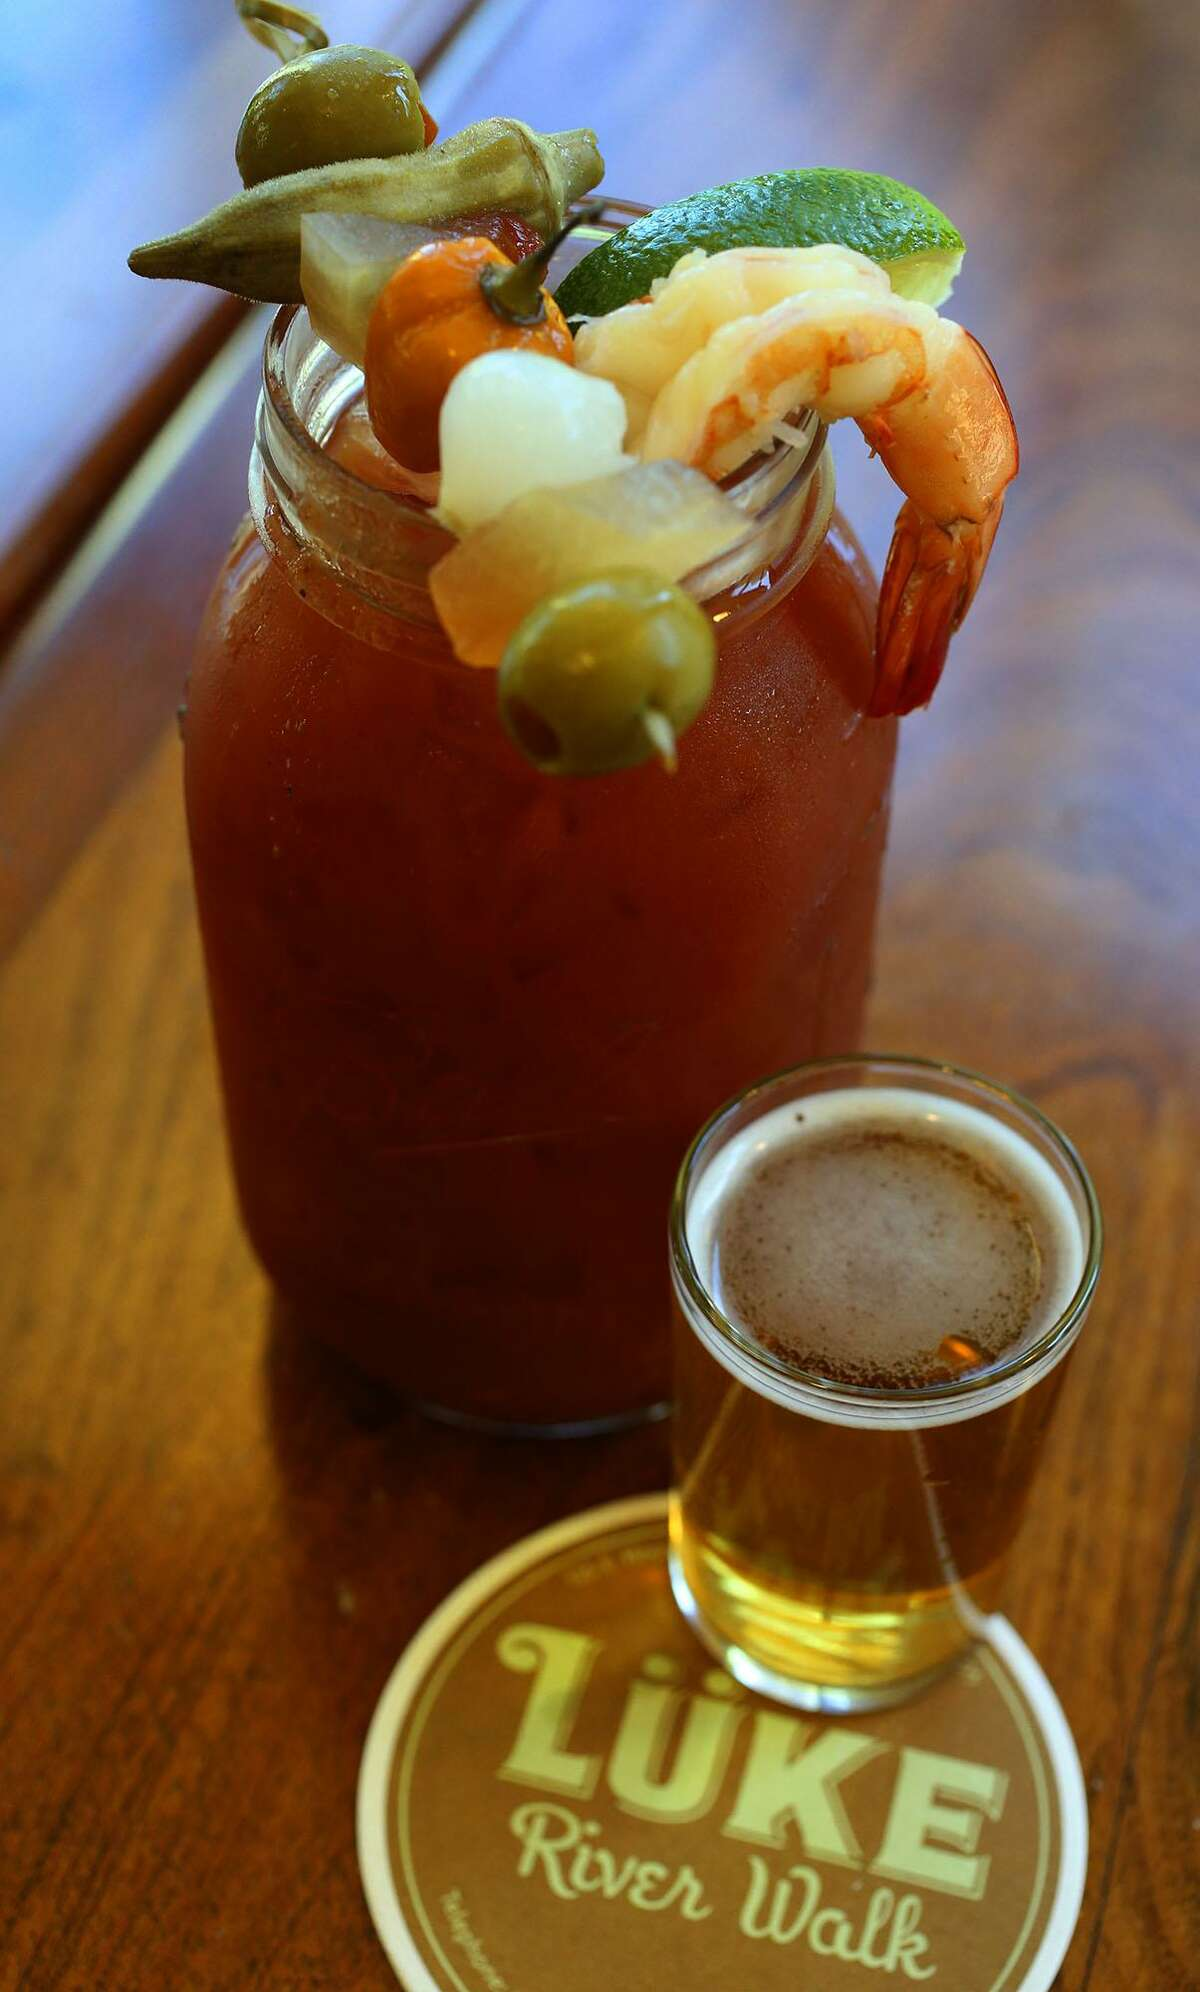 Lüke's bloody mary comes with a chaser of Alamo Ale.